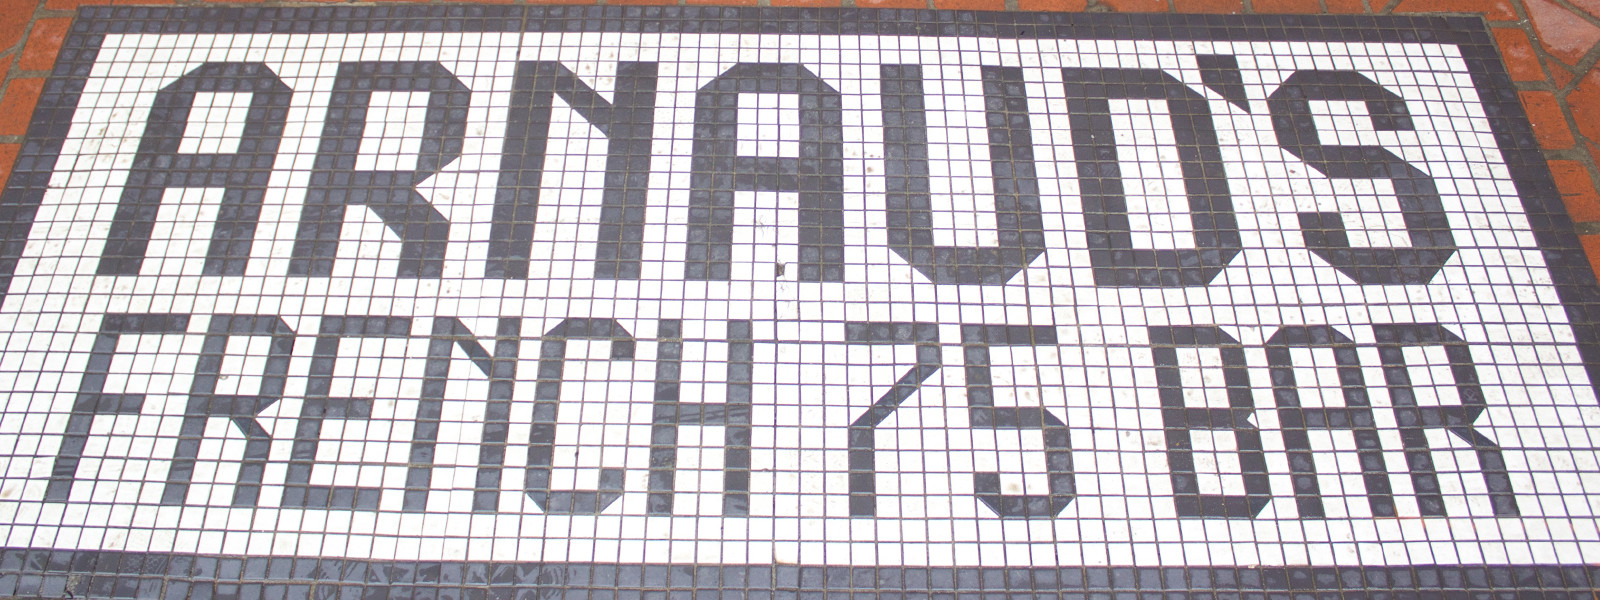 Mosaic Type From New Orleans